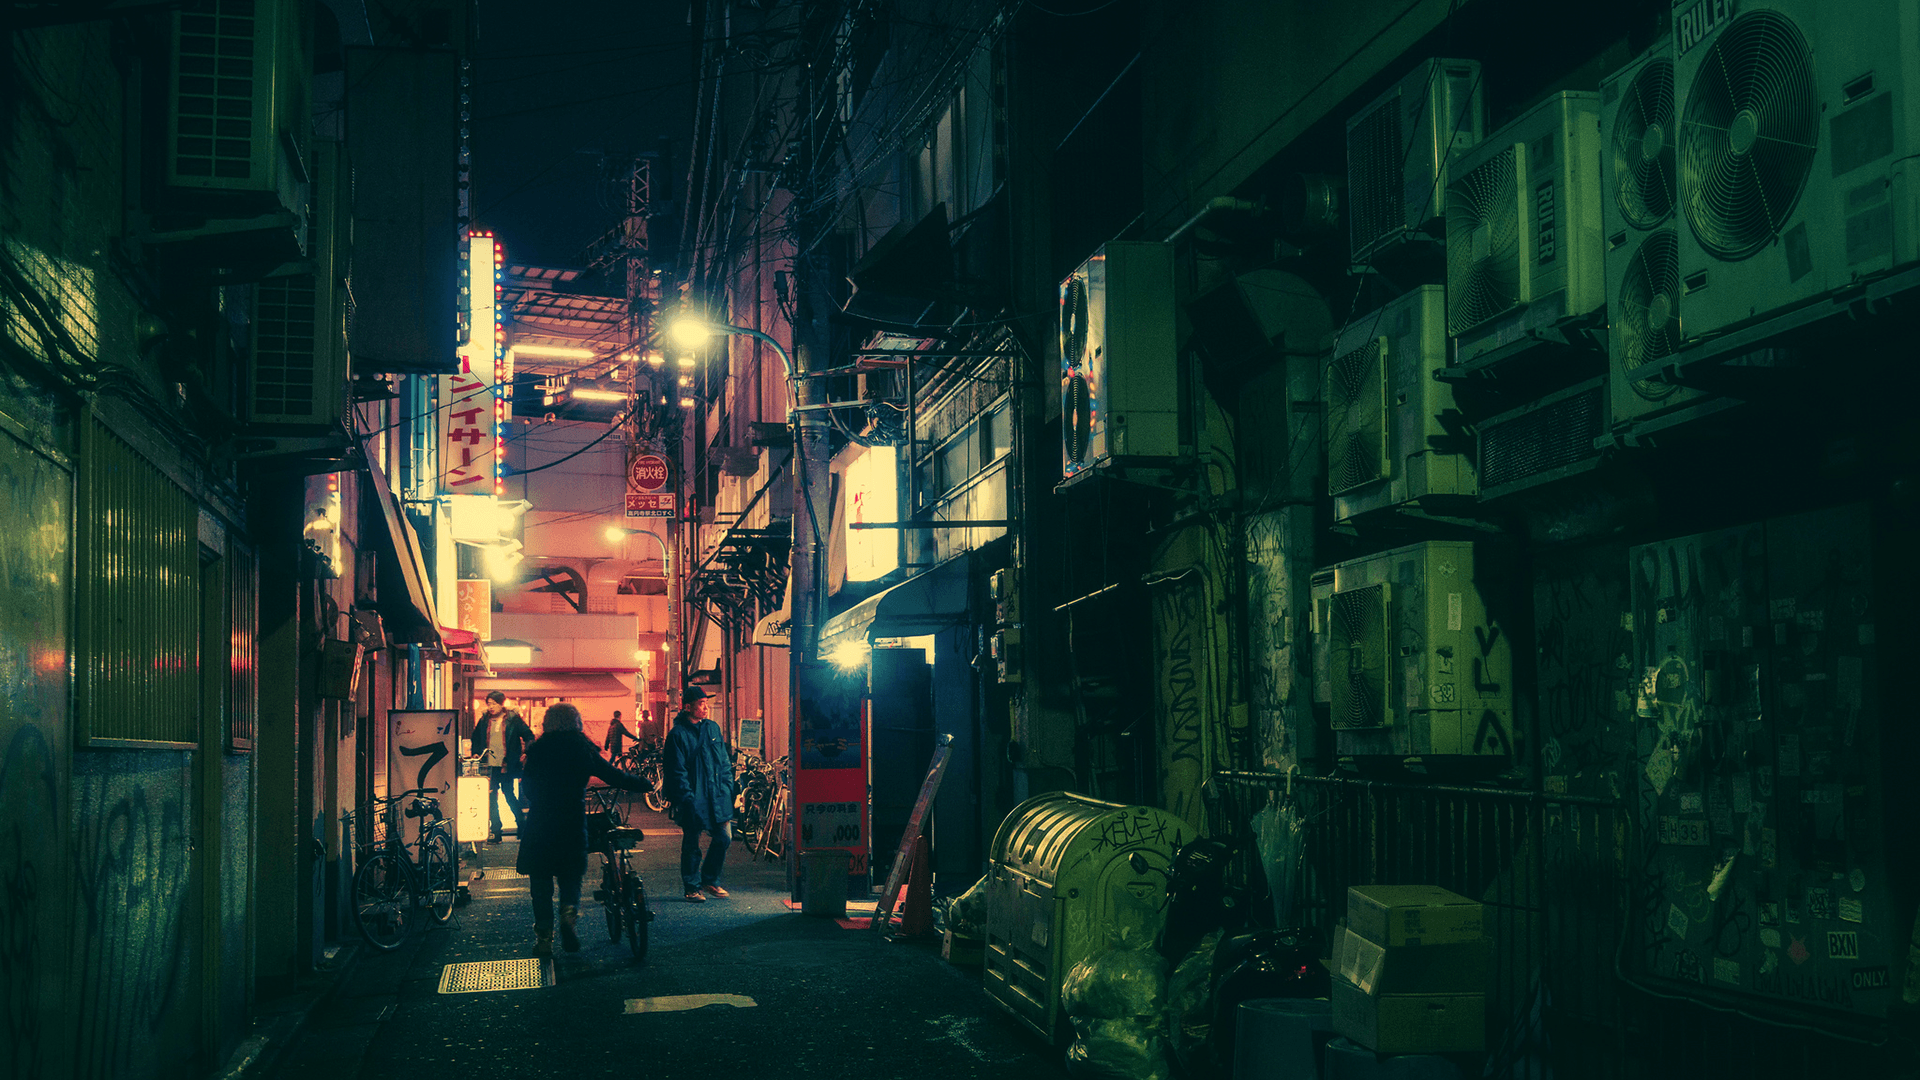 Japanese Neon Wallpapers - Top Free Japanese Neon